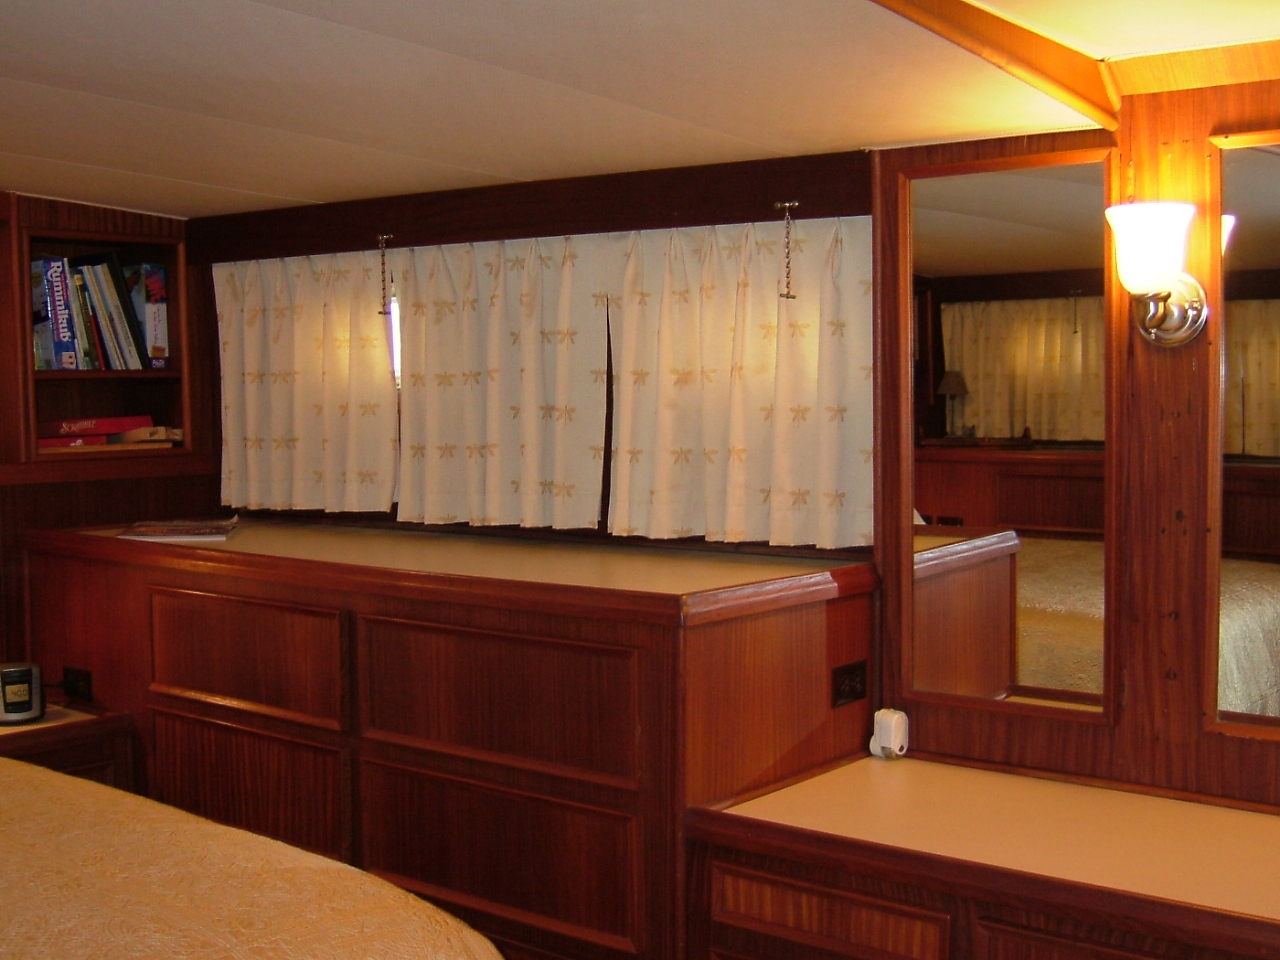 3 Master Stateroom, looking to port